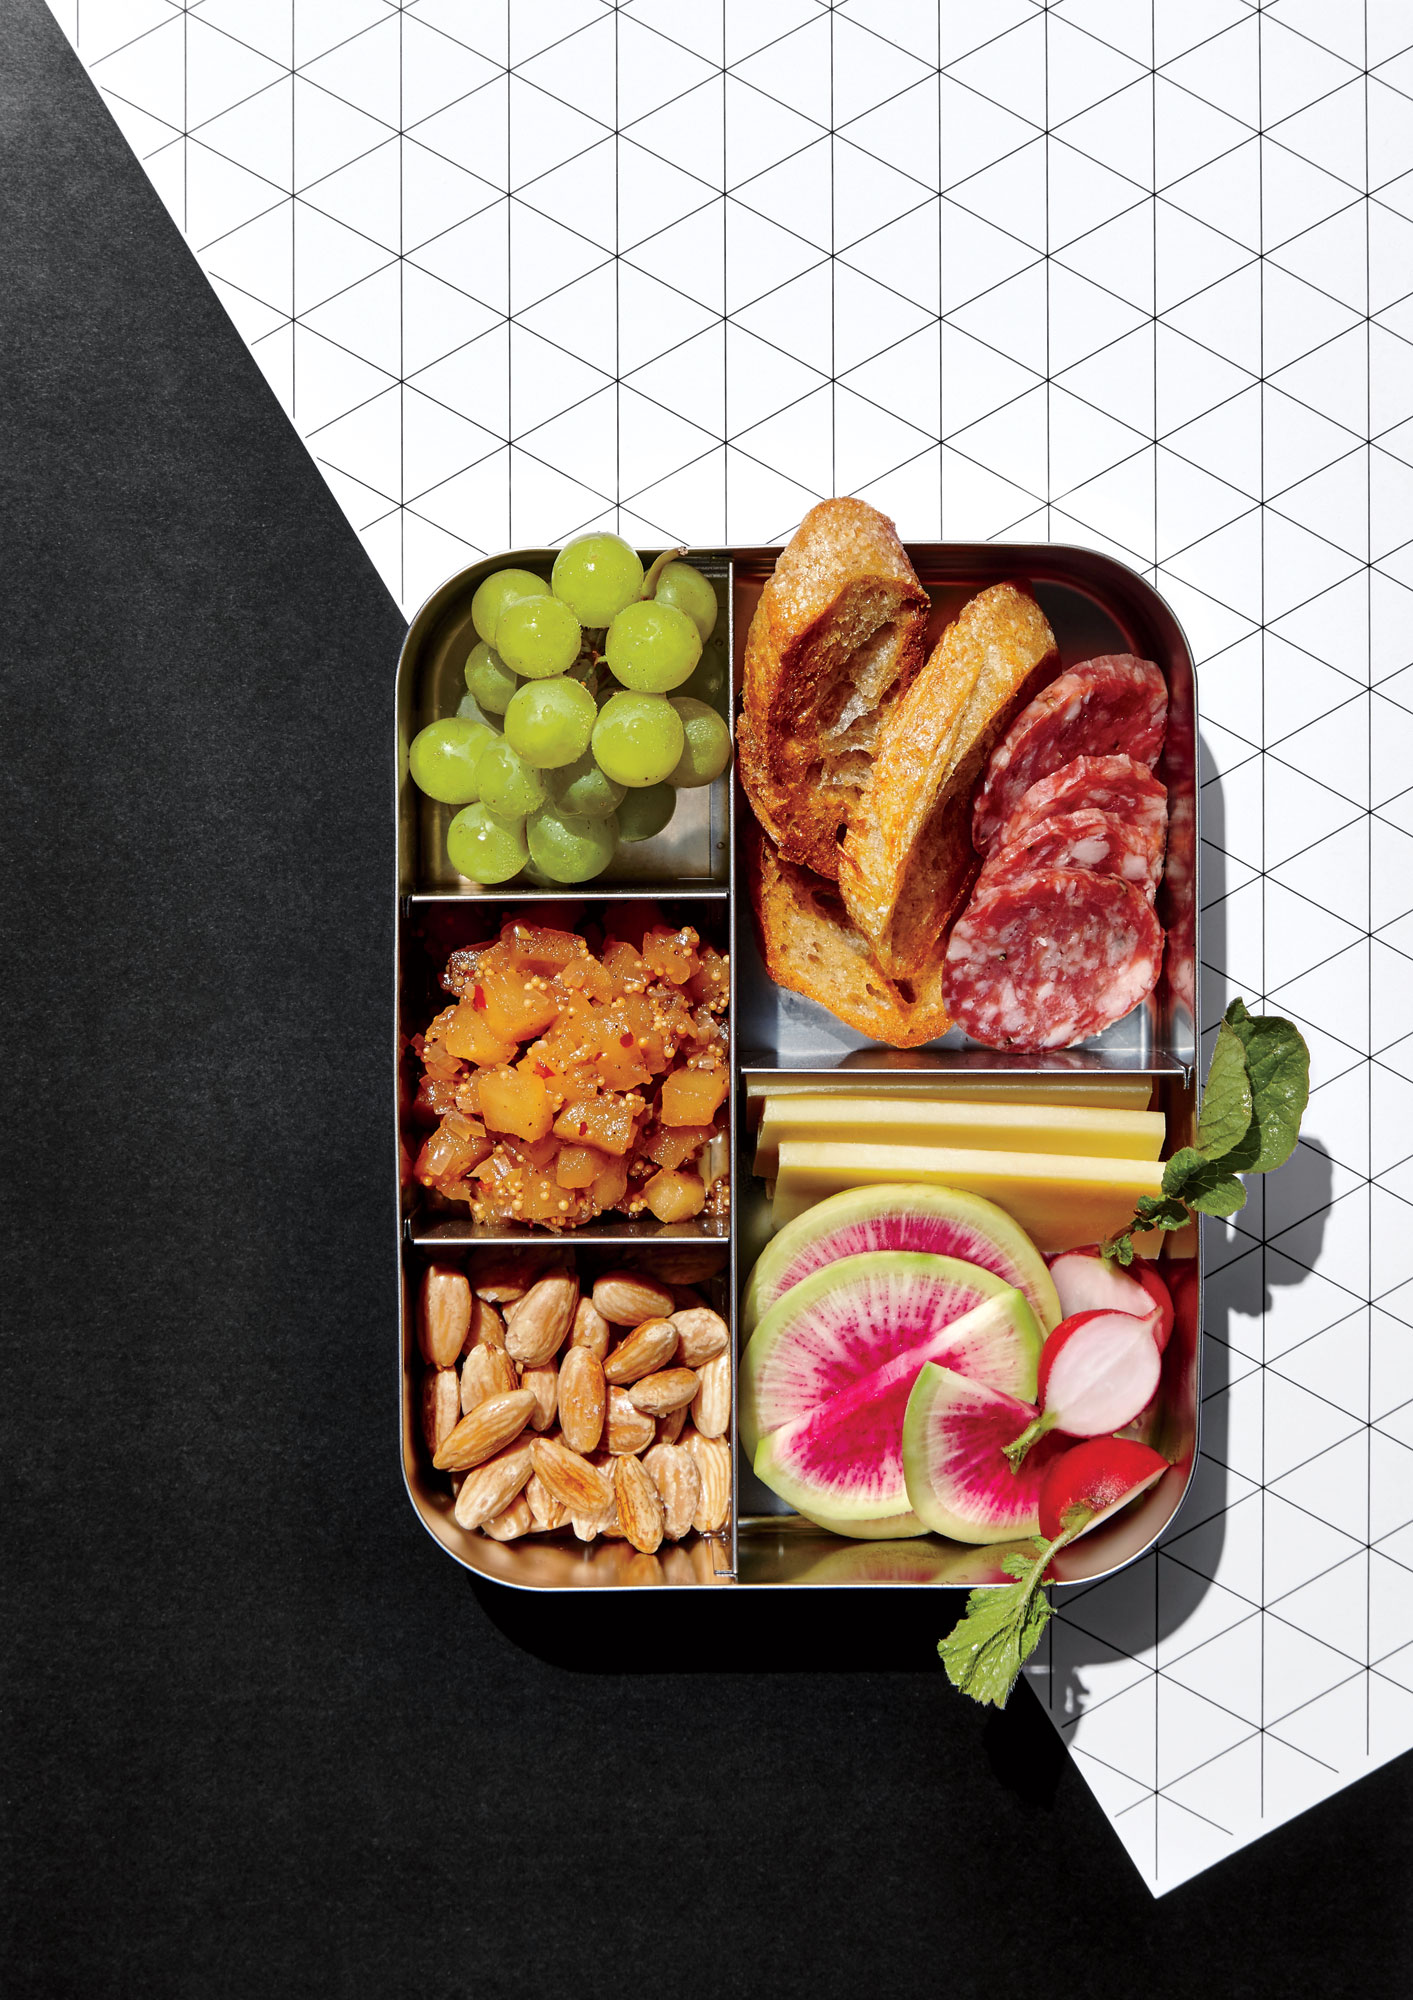 ck-Ploughman's Lunch Box